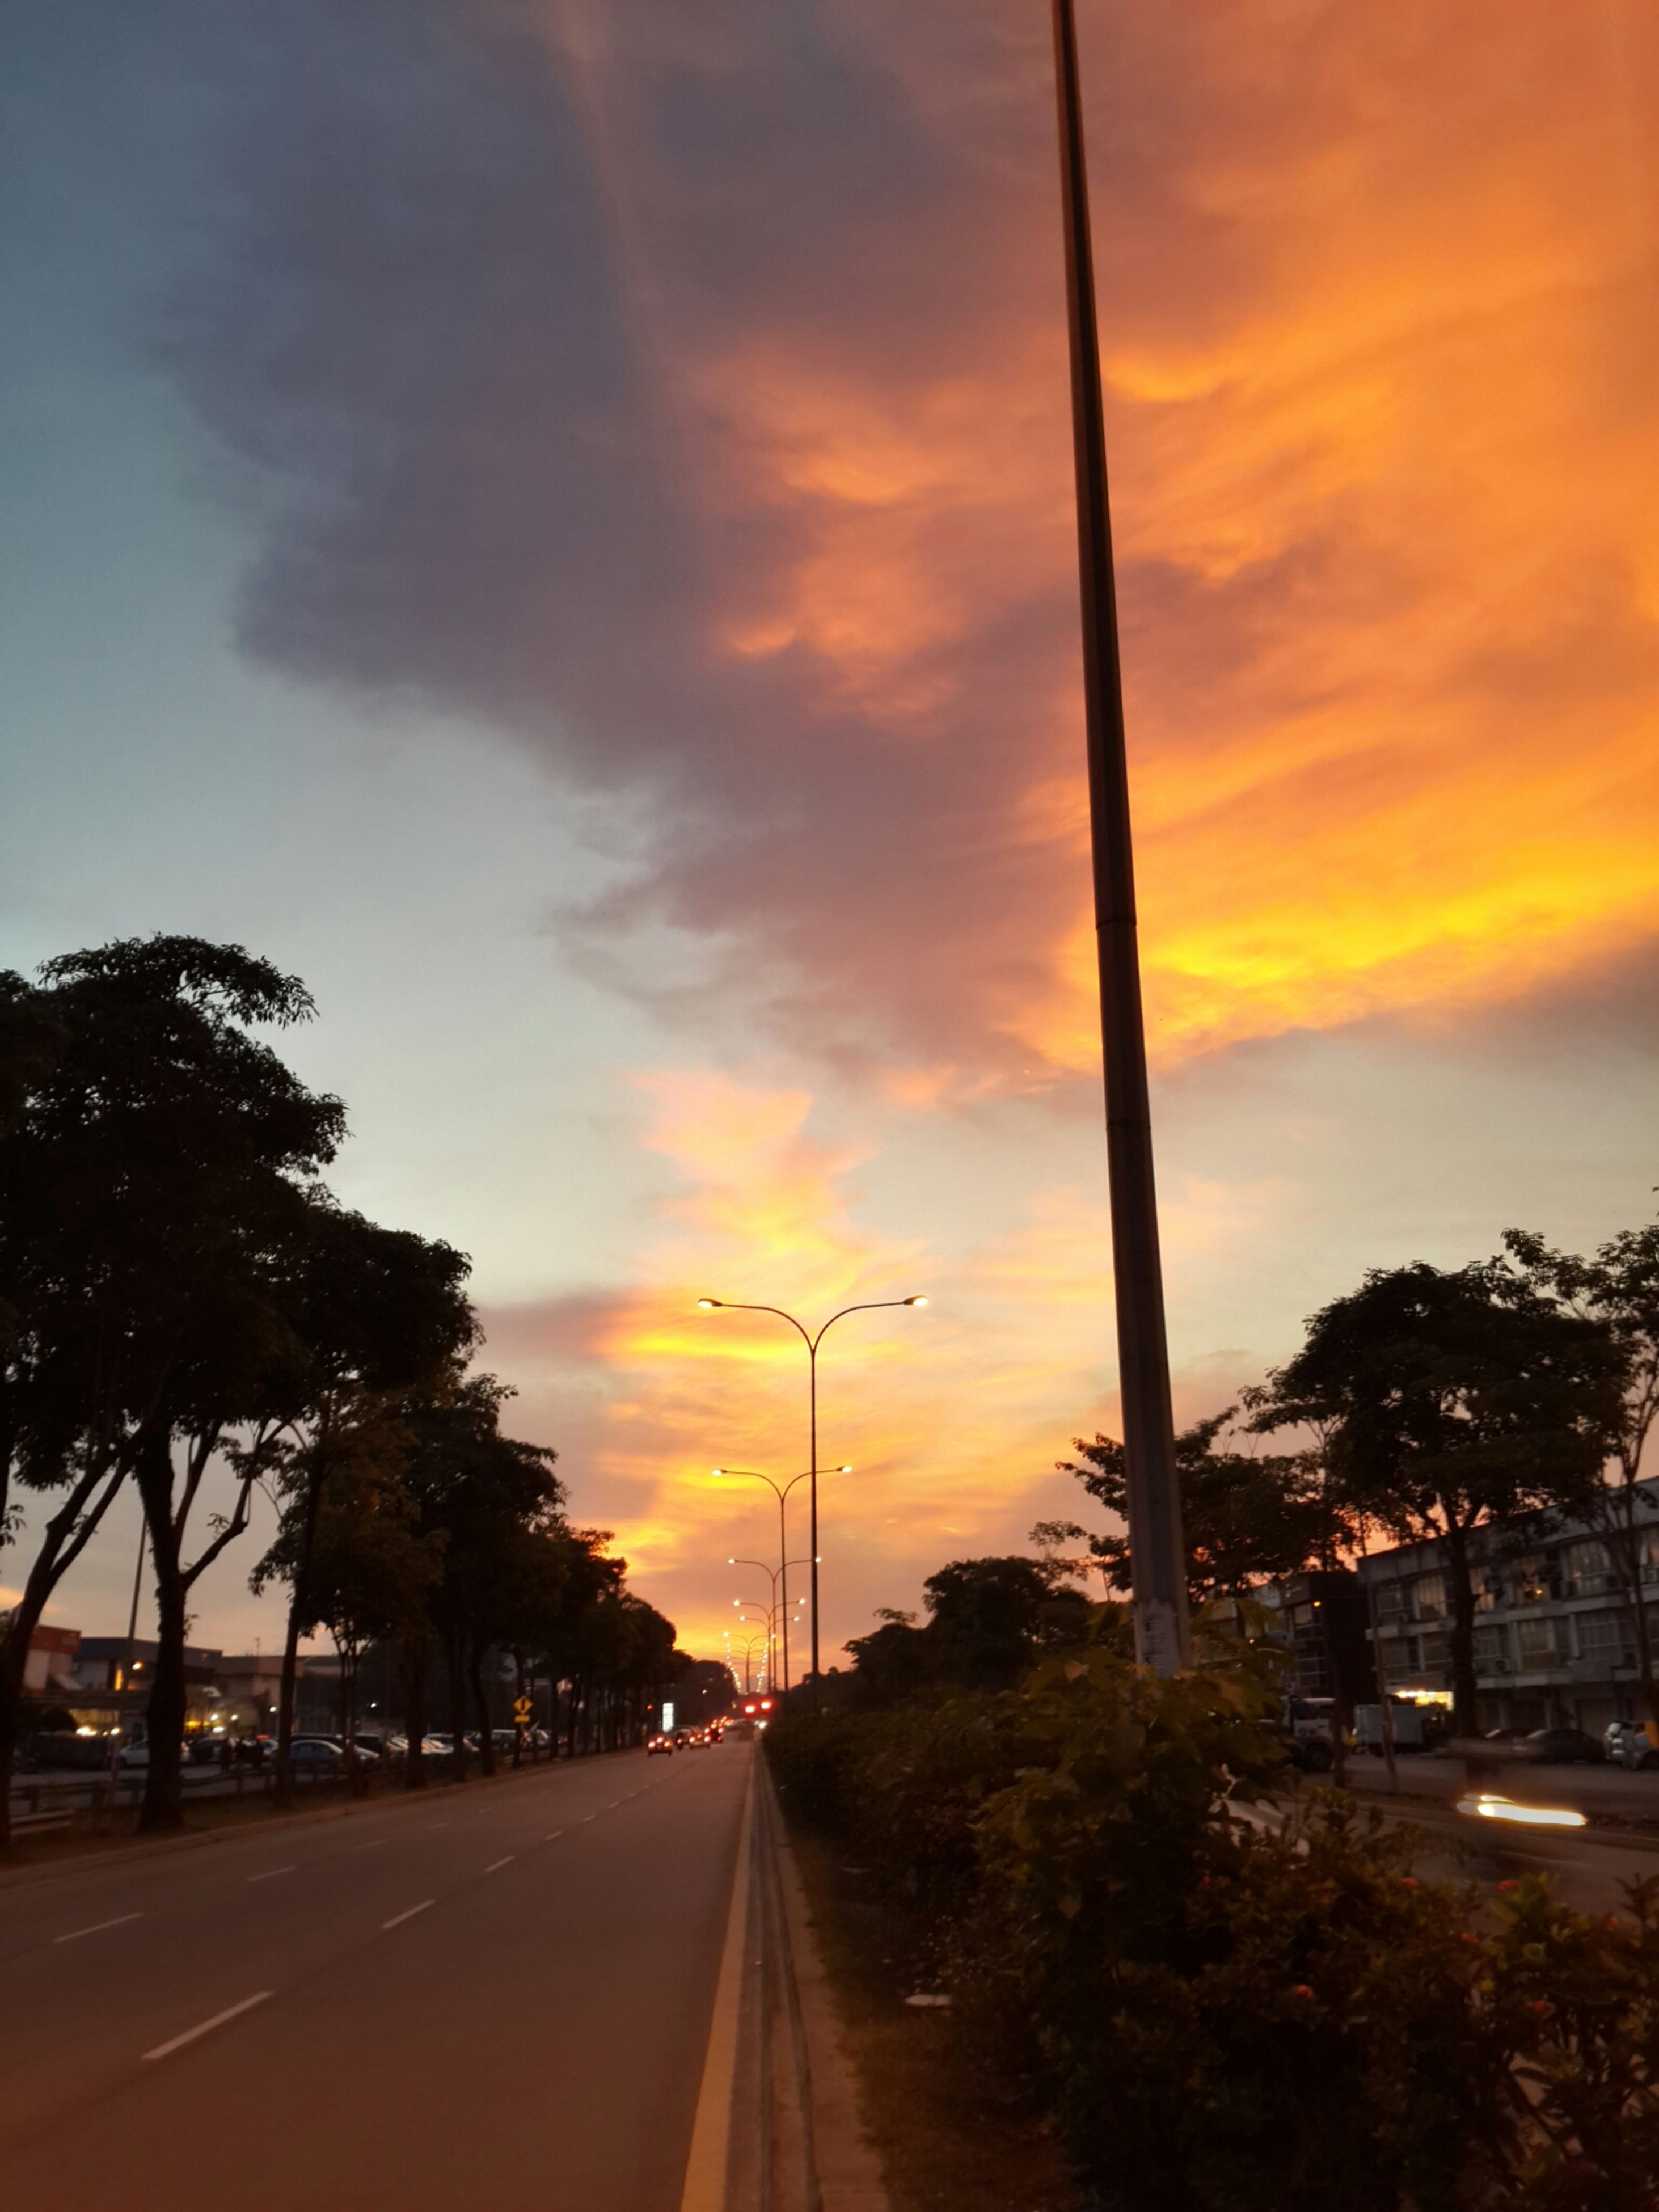 sunset, transportation, the way forward, road, sky, tree, cloud - sky, street, diminishing perspective, orange color, street light, car, road marking, cloudy, vanishing point, building exterior, cloud, land vehicle, built structure, architecture